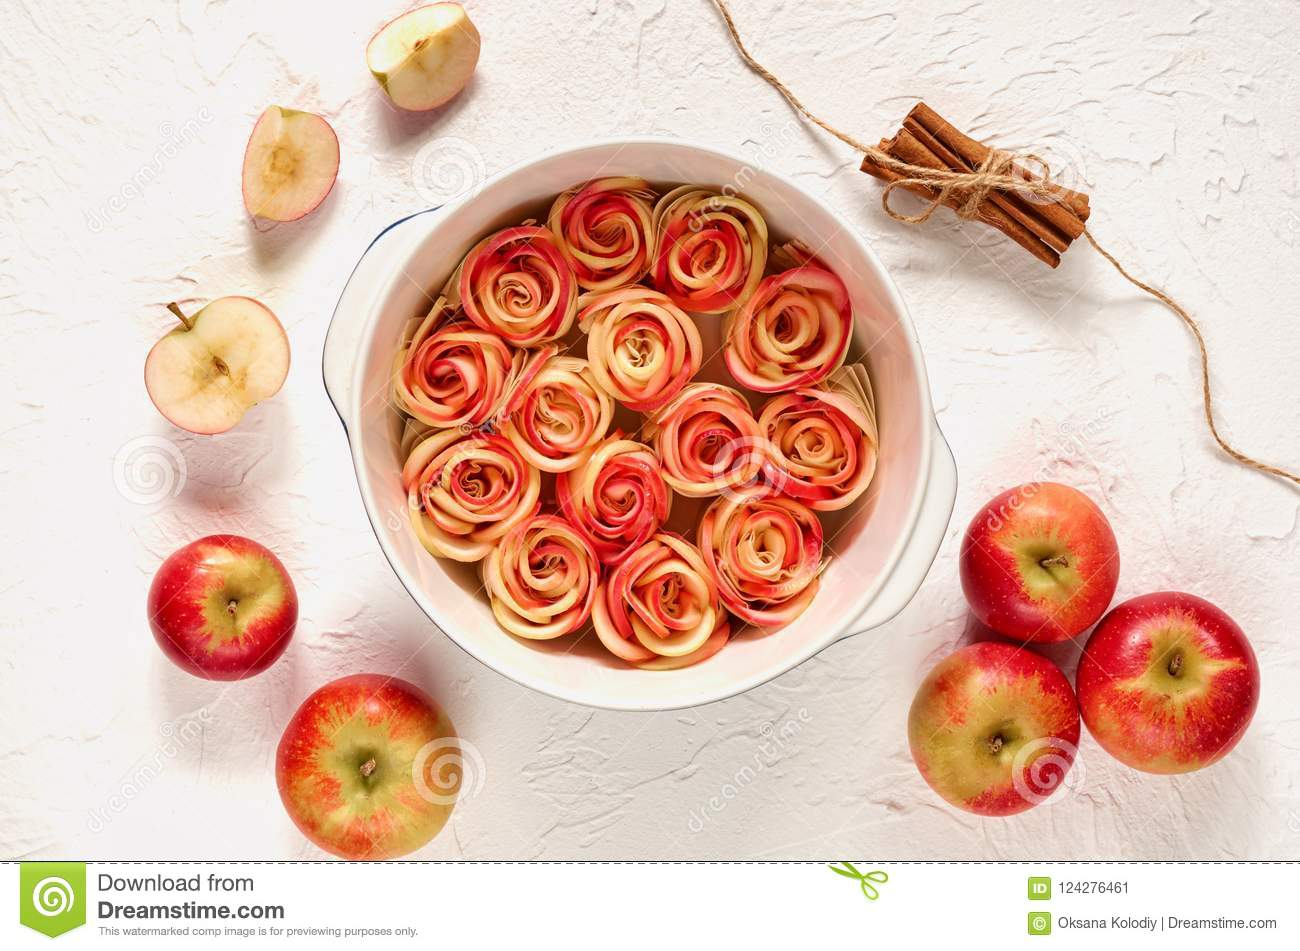 Аpple rose tart in the baking dish decorated with fresh sliced apples and cinnamon sticks. Vegetarian autumn pie on white table